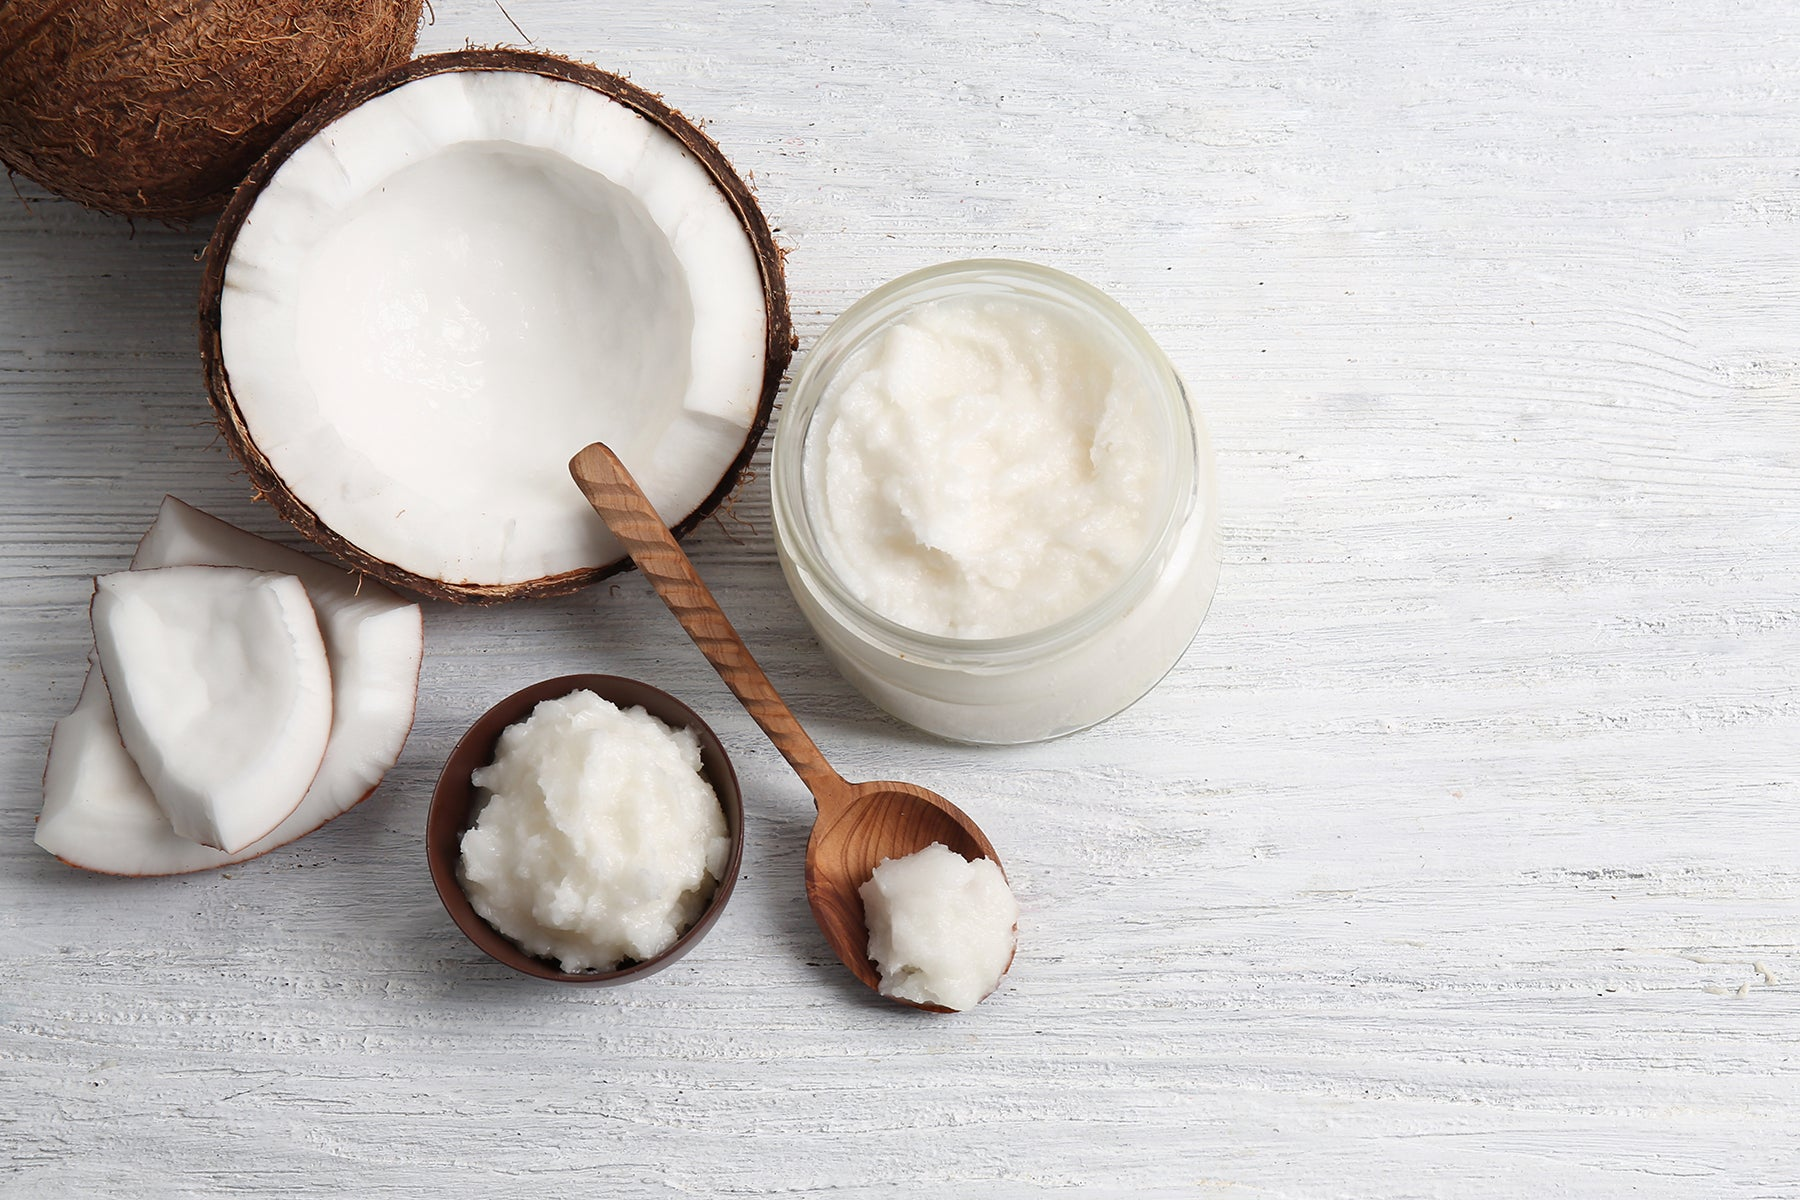 What's the difference between Centrifuge and Expeller pressed Virgin Coconut Oil?